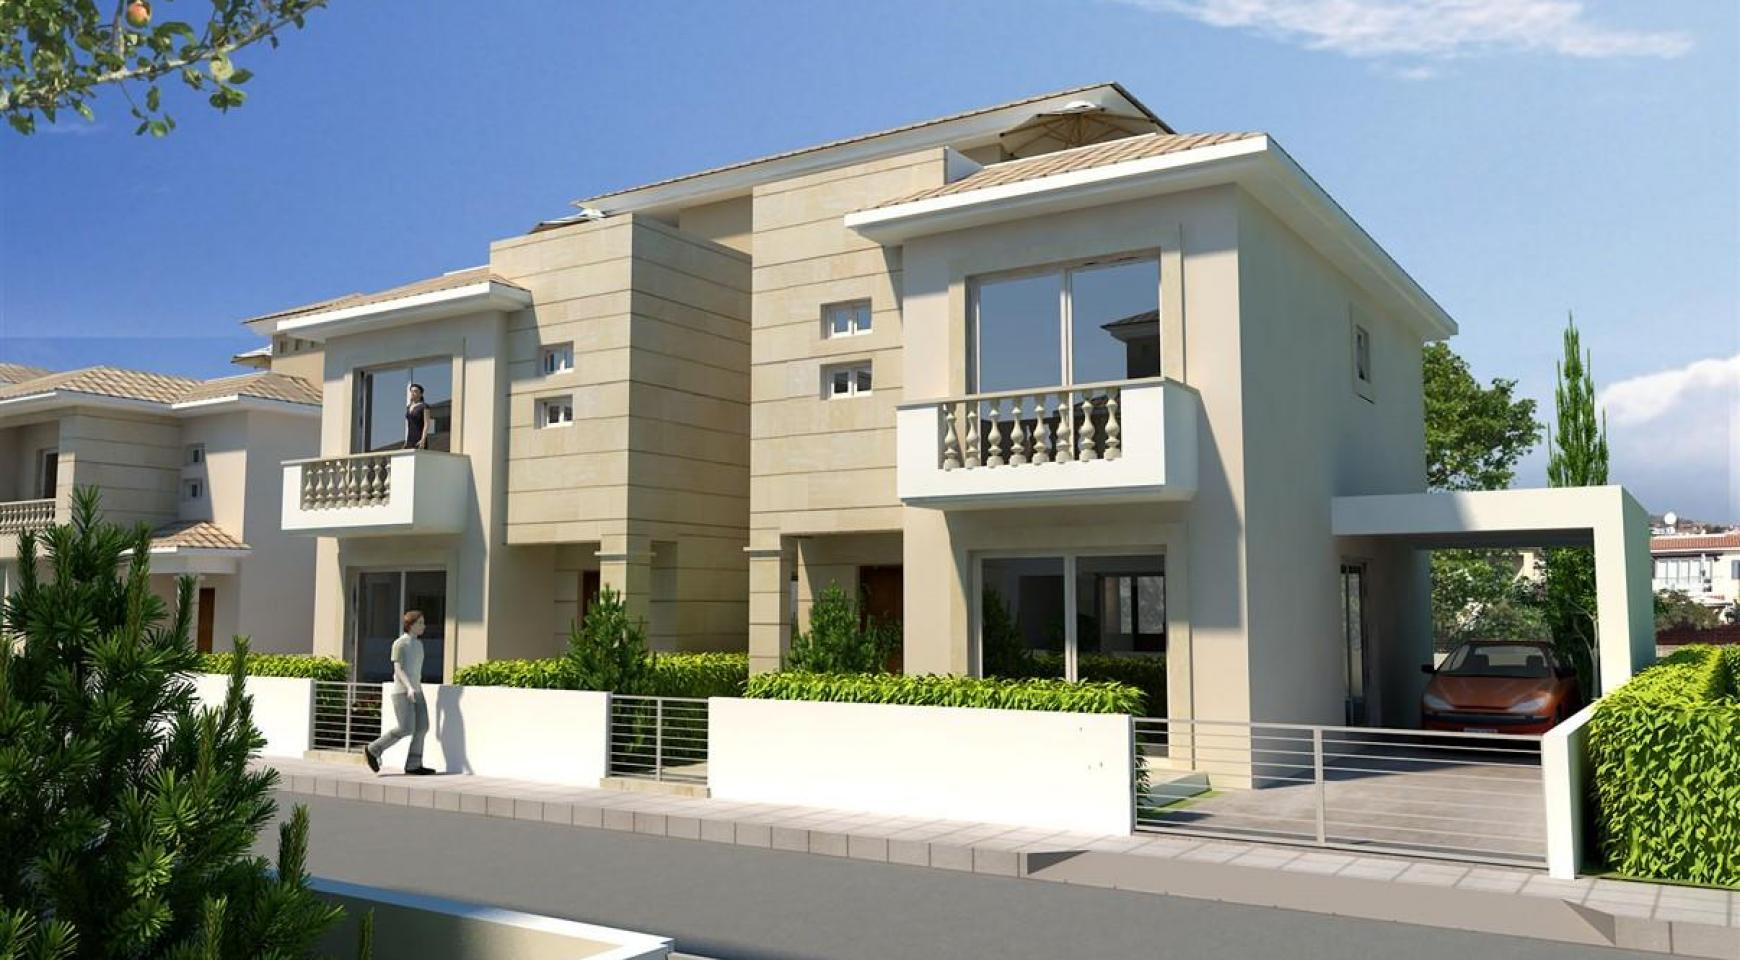 3 Bedroom Villa in a New Project - 24